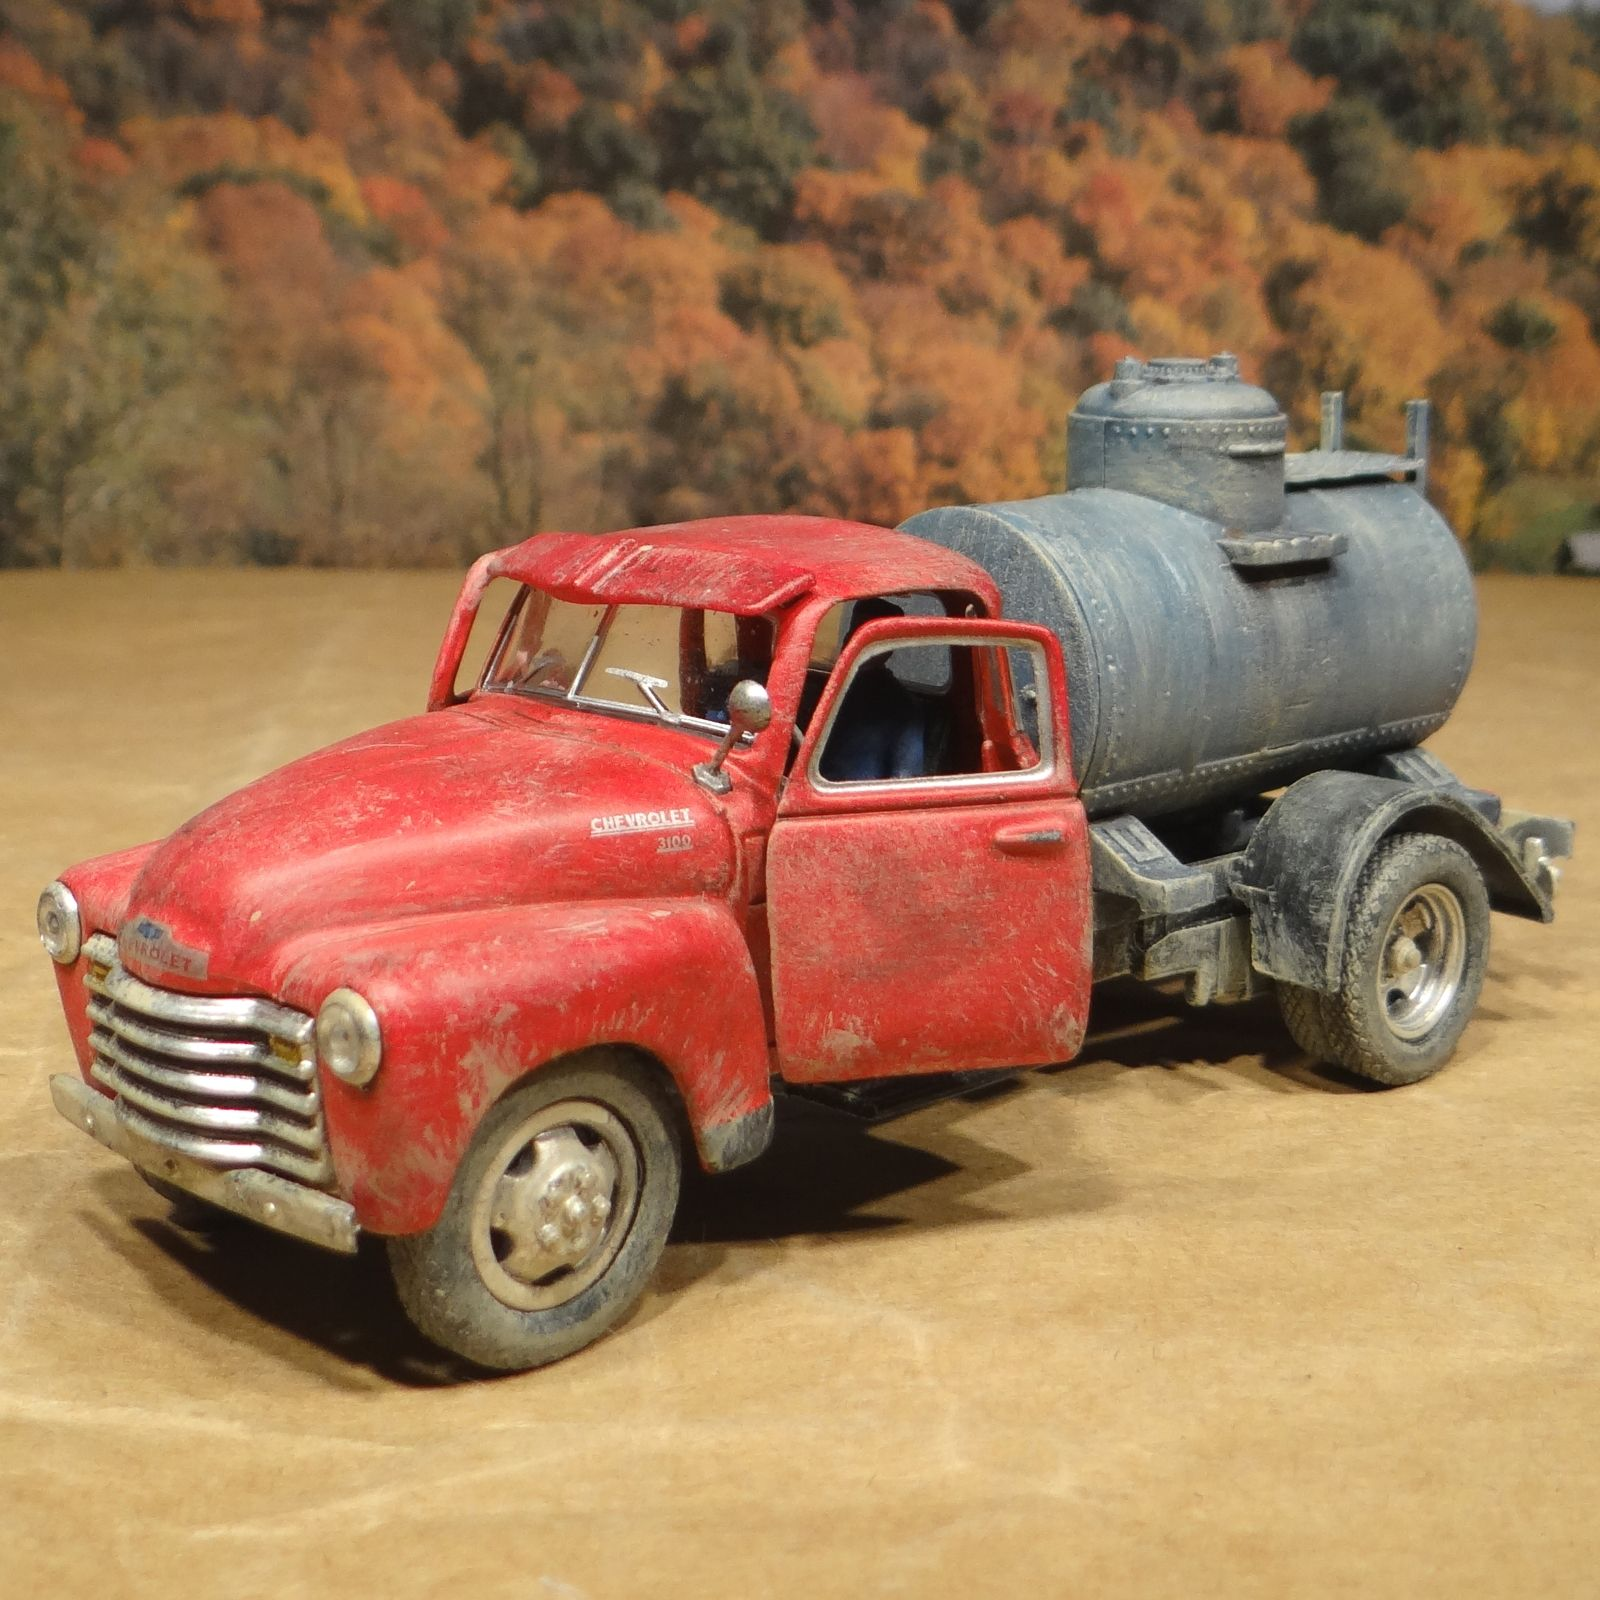 1950 Chevrolet Farm Water Truck - On Sale Now for a very limited ...